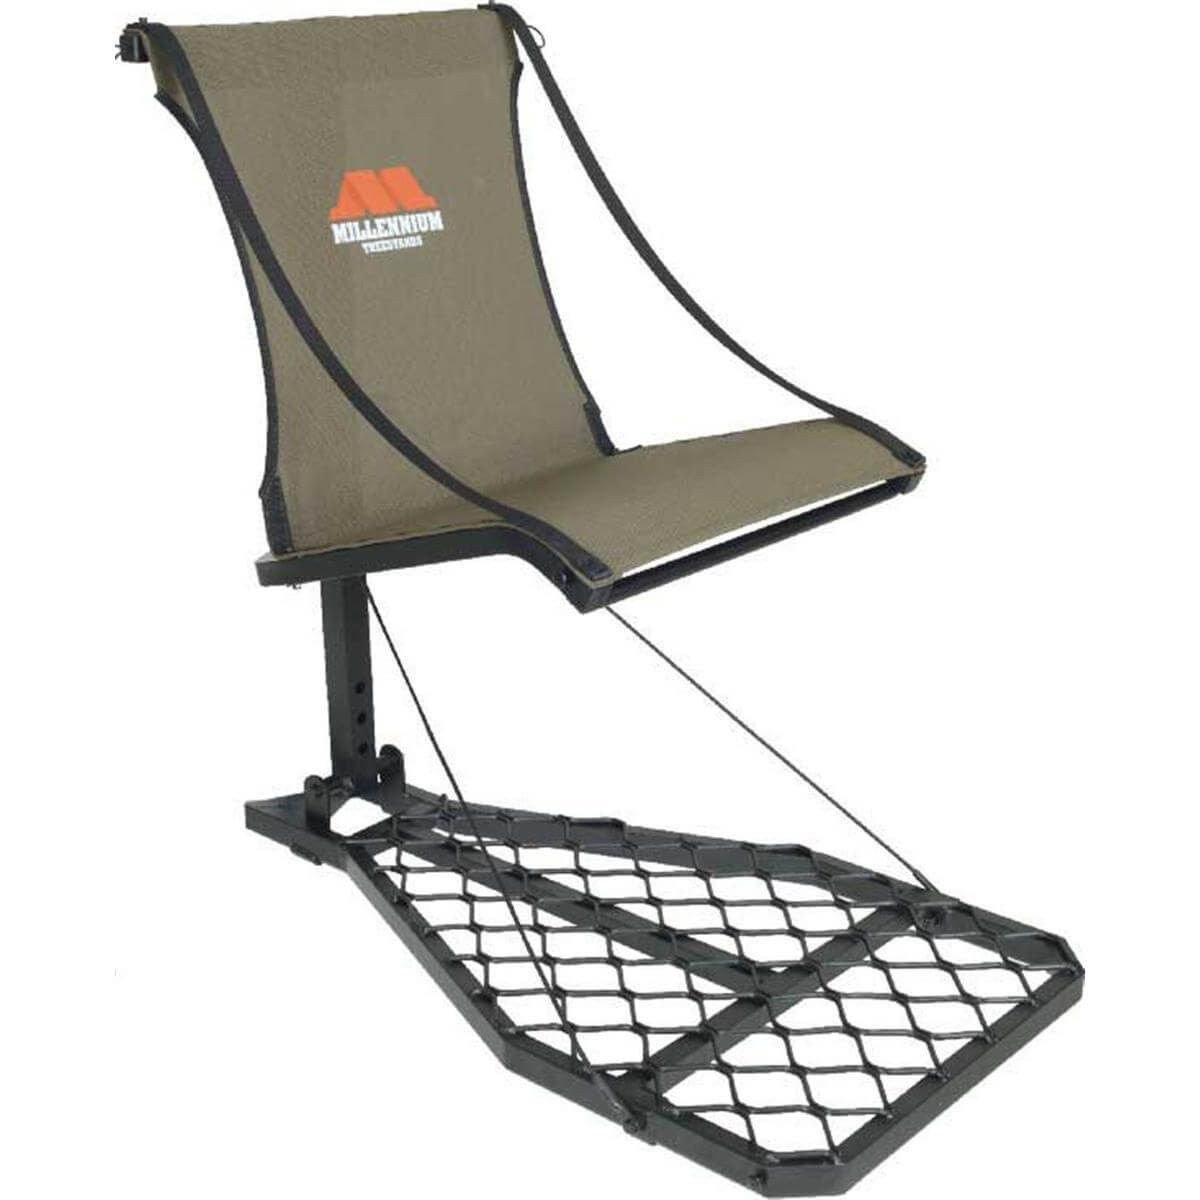 Millennium Treestands M50 Hang-On